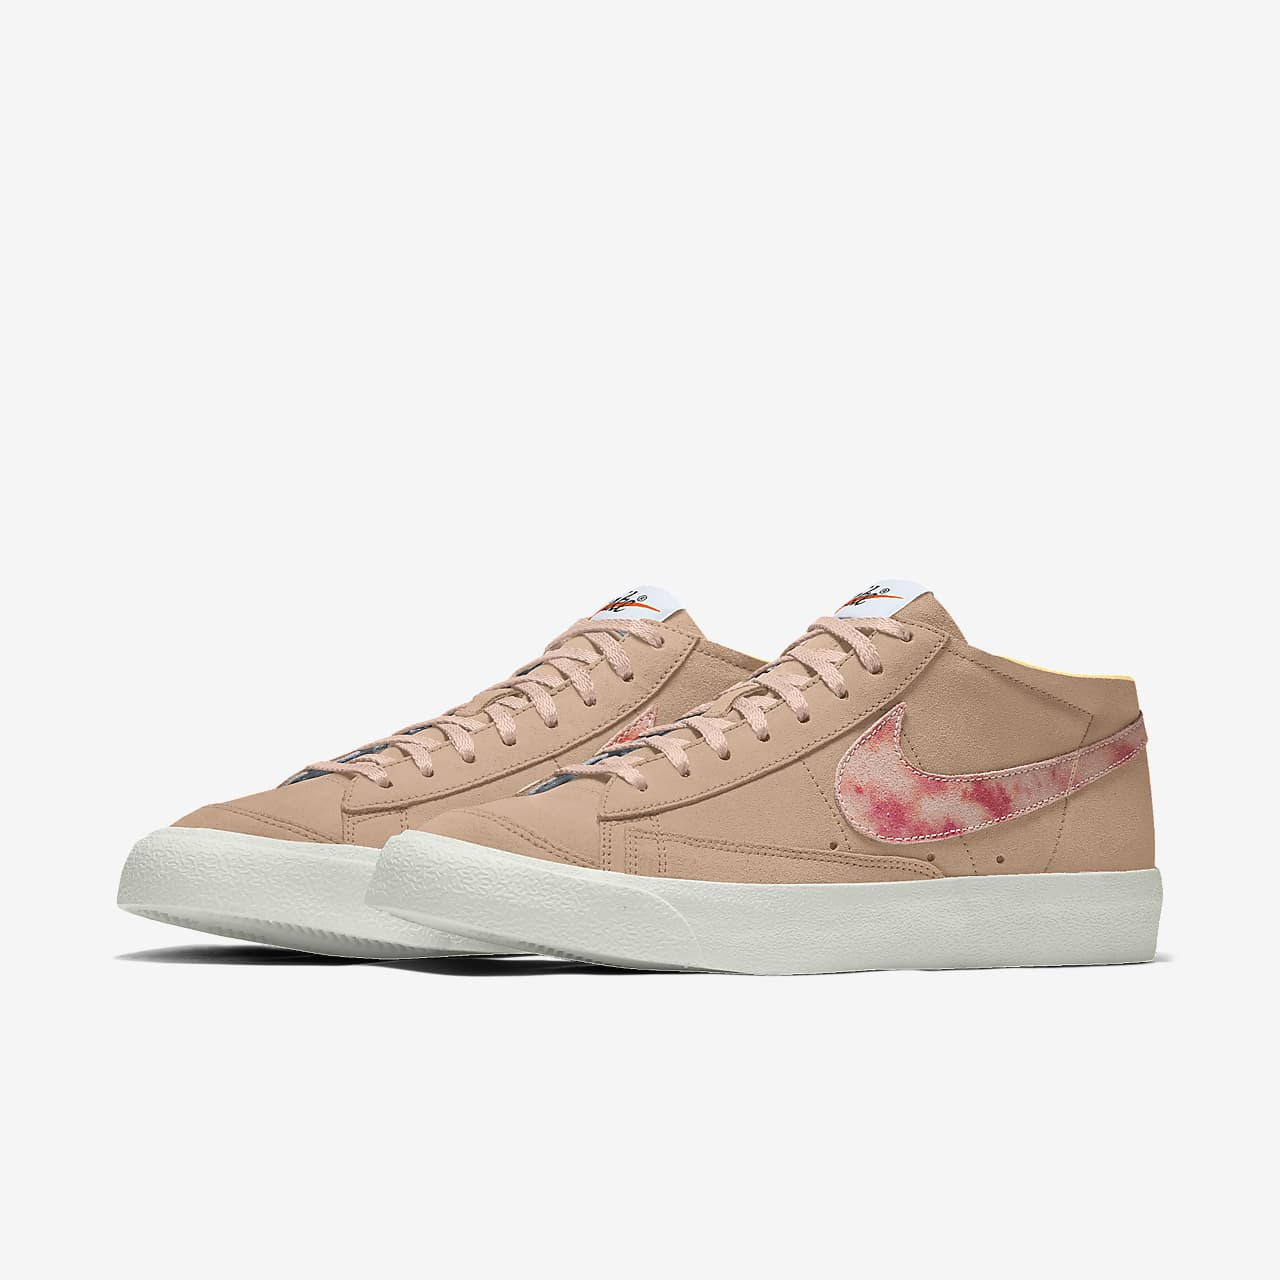 Nike Blazer Mid '77 By You Custom lifestyleschoen voor dames